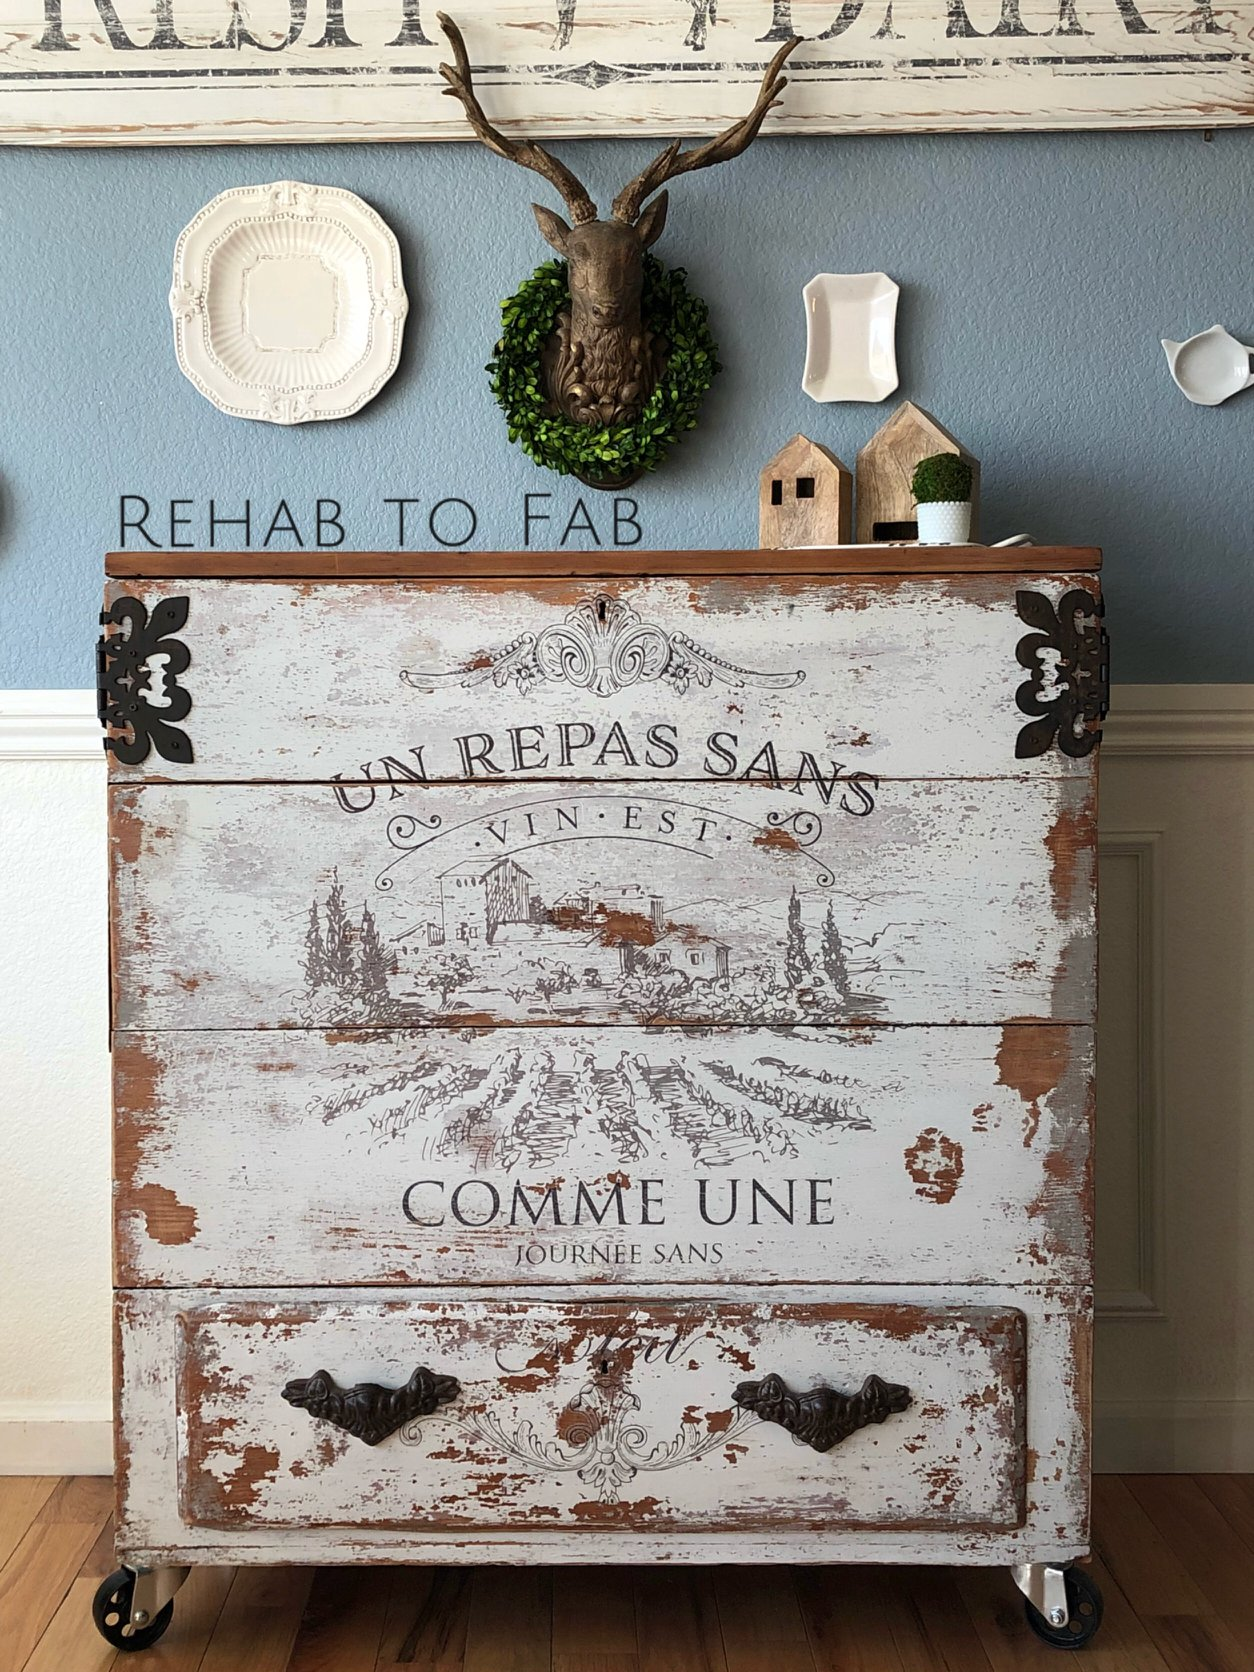 Thank you for stopping by-we hope you enjoyed today's post with Stephanie and her amazing Rustic Chest. Be sure to follow her on social media to catch all of her latest furniture pieces, tutorials and informative posts here:  Instagram: https://www.instagram.com/stephanie_rehabtofab/   Facebook: https://www.facebook.com/RehabtoFab/